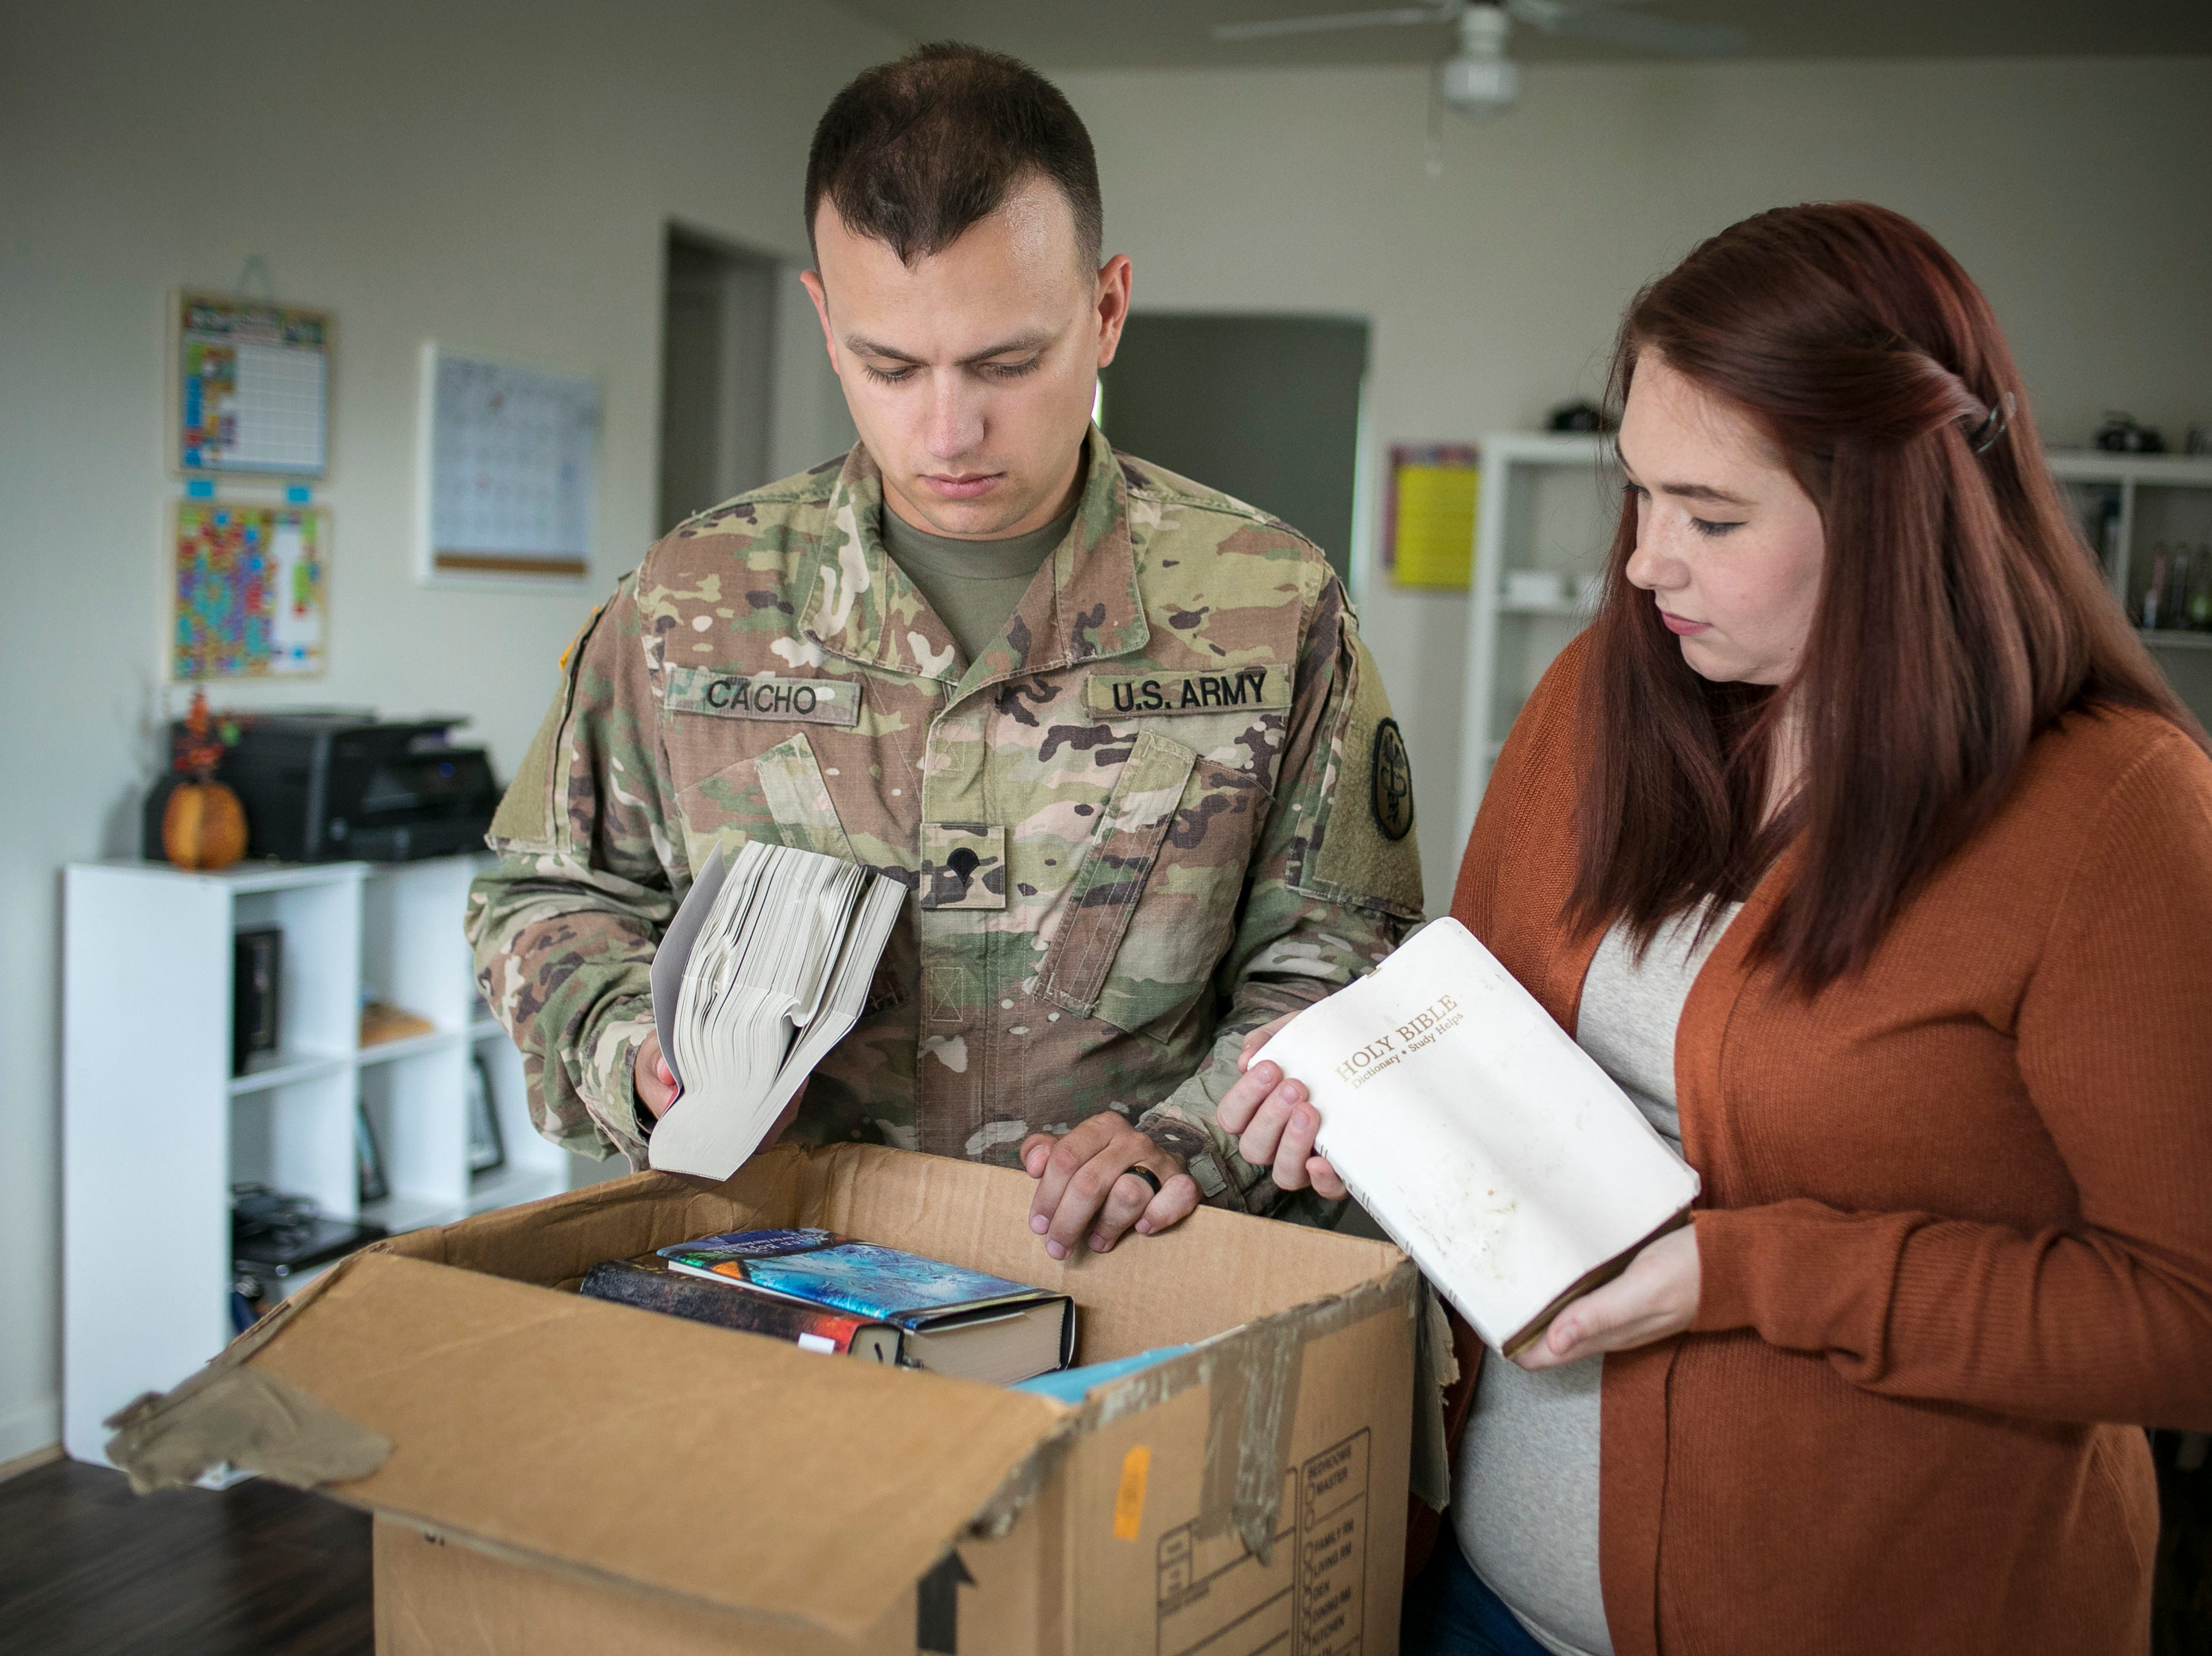 Specialist Christopher Cacho and his wife, Andrea look through their damaged books, after a bad experience moving from Ft. Campbell to Ft. Belvoir back in July. September 4, 2018.